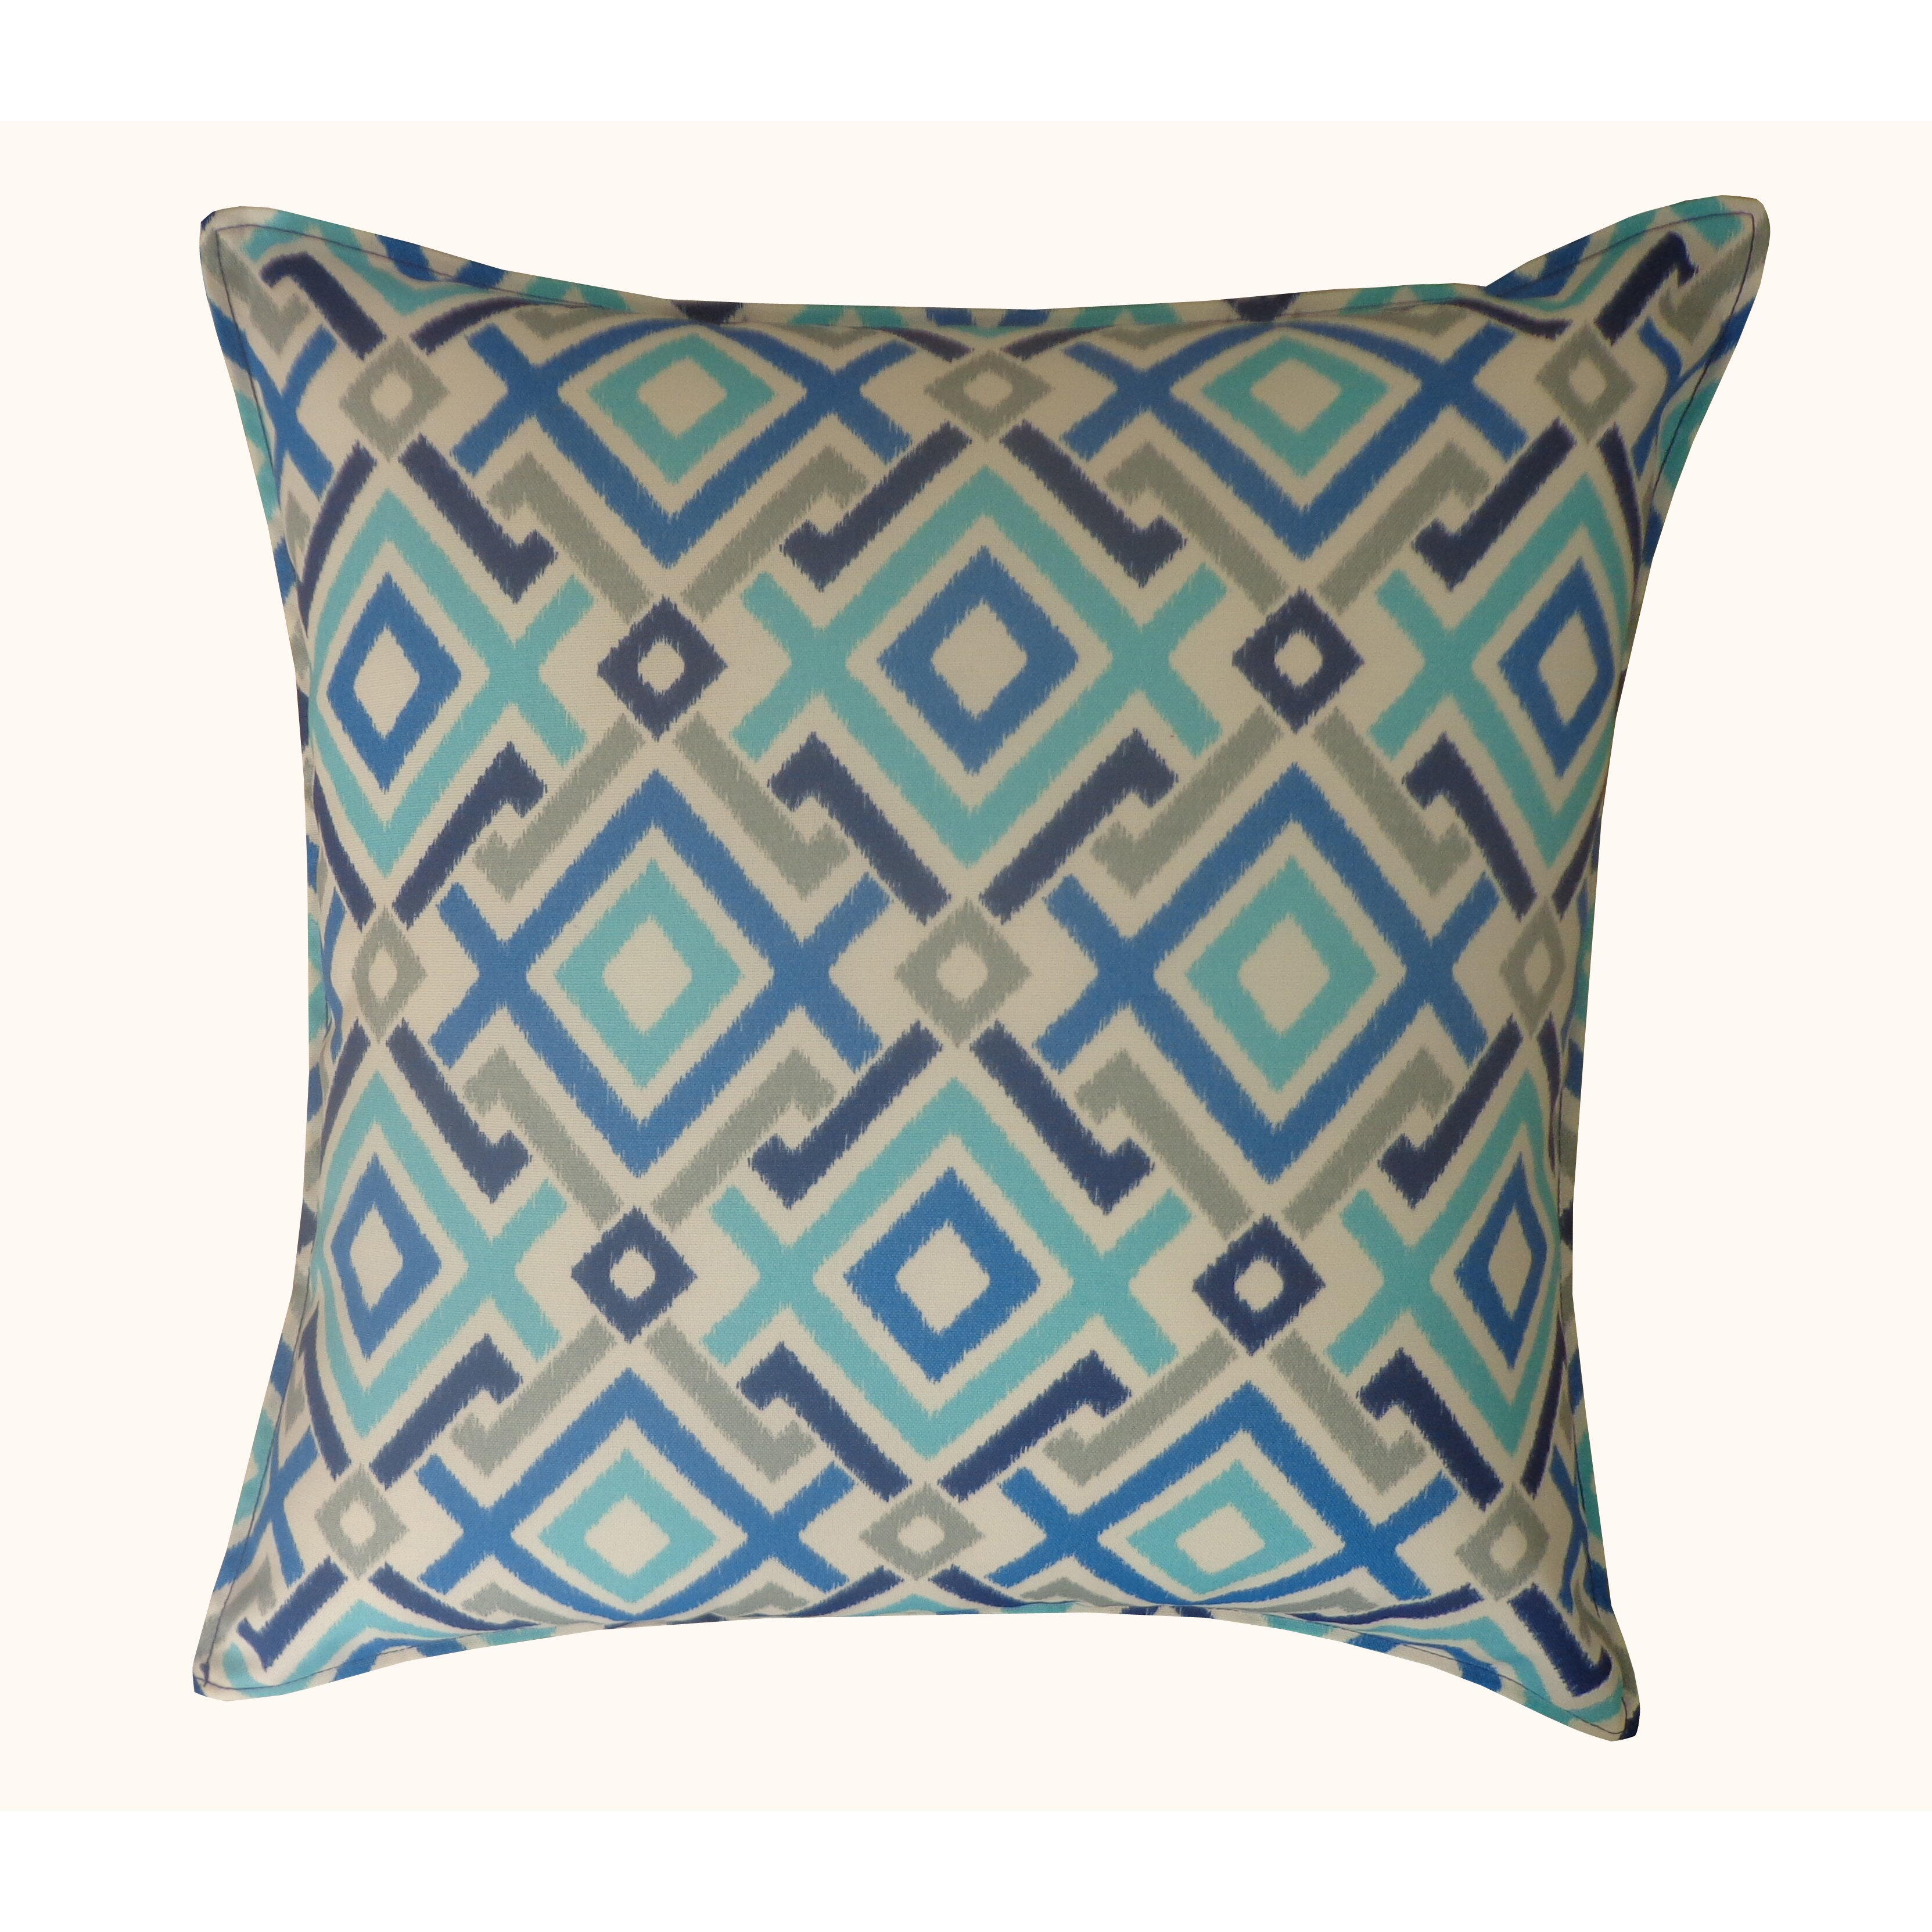 Jiti Decorative Pillows : Jiti Chopped Outdoor Throw Pillow & Reviews Wayfair